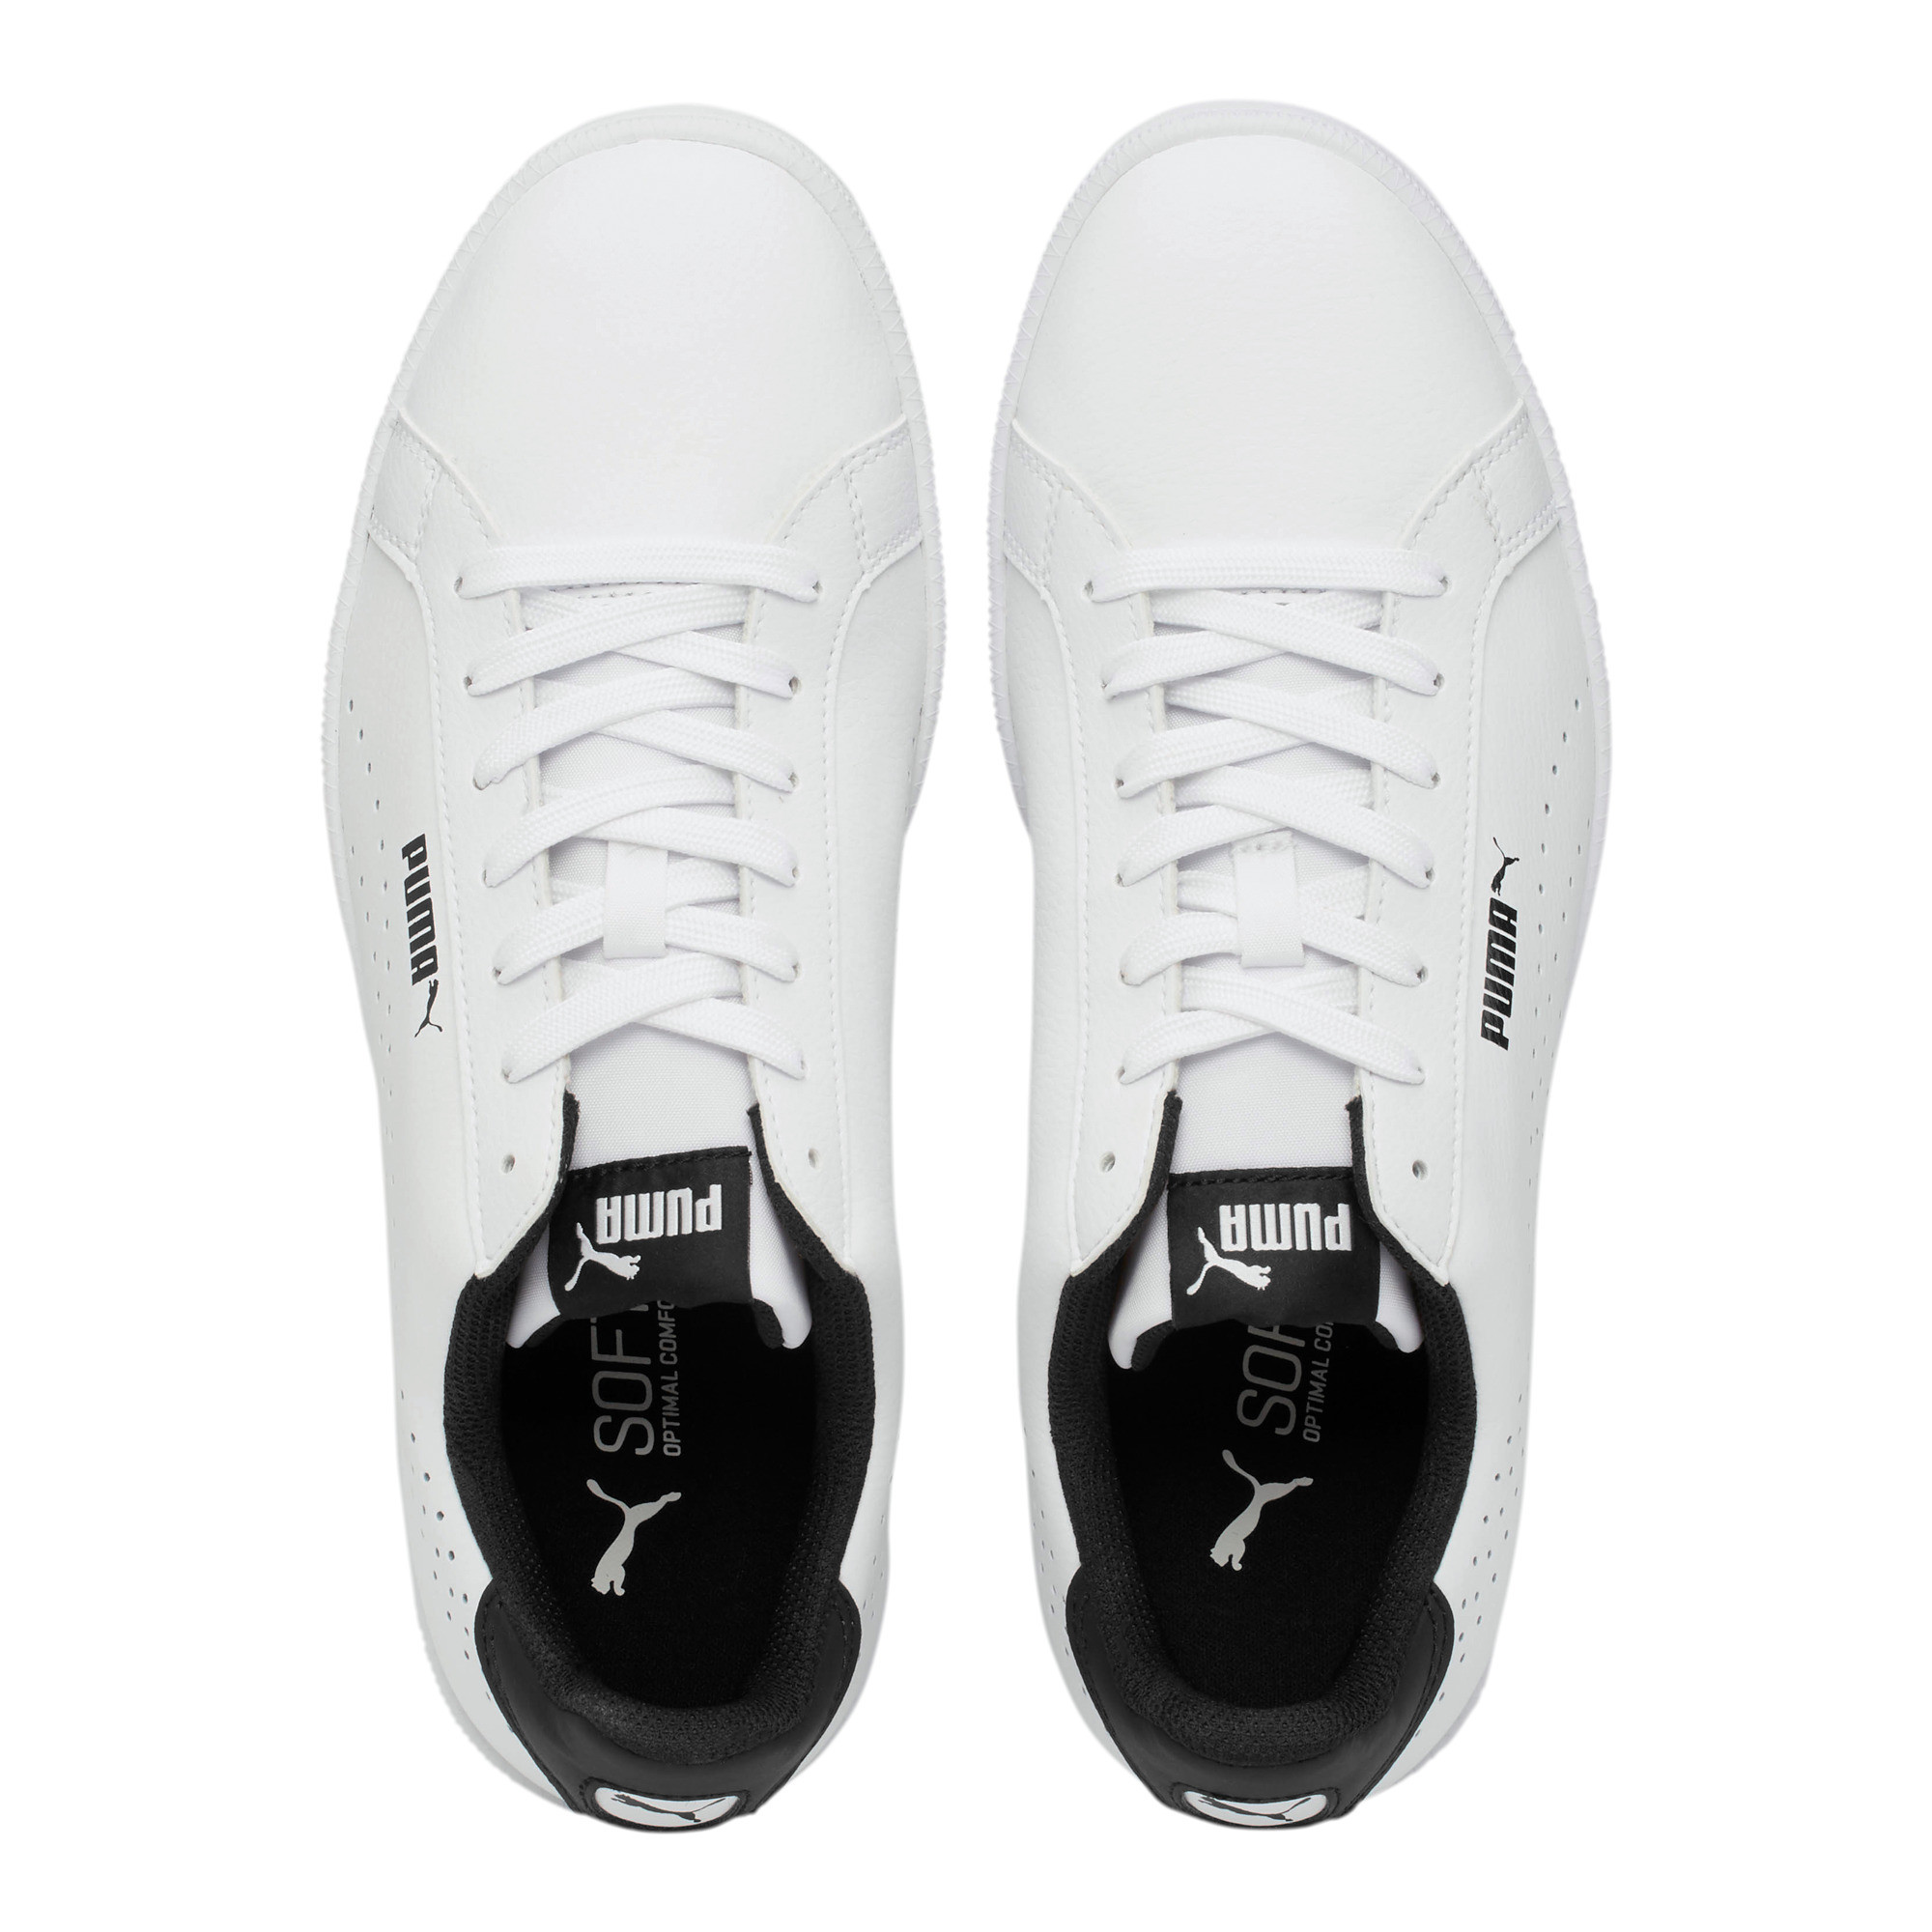 PUMA-PUMA-Smash-Perf-Men-039-s-Sneakers-Men-Shoe-Basics thumbnail 17